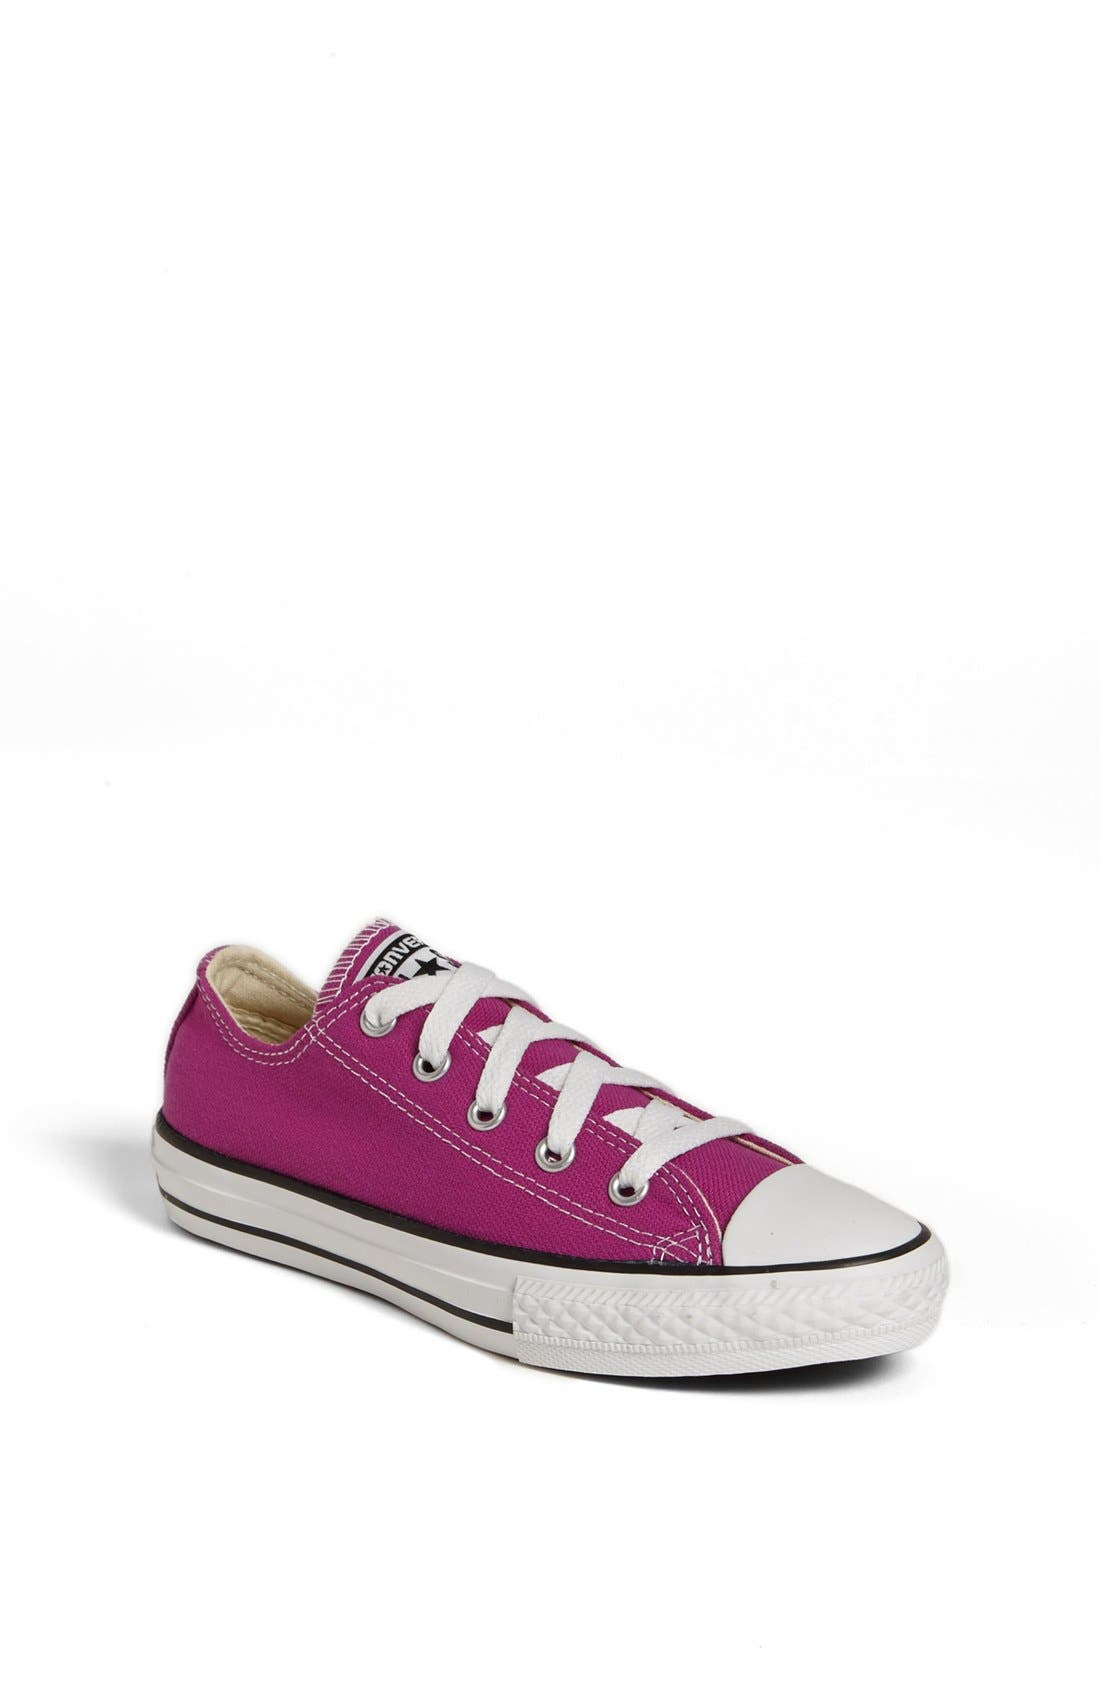 Main Image - Converse Chuck Taylor® 'Specialty' Sneaker (Toddler & Little Kid)